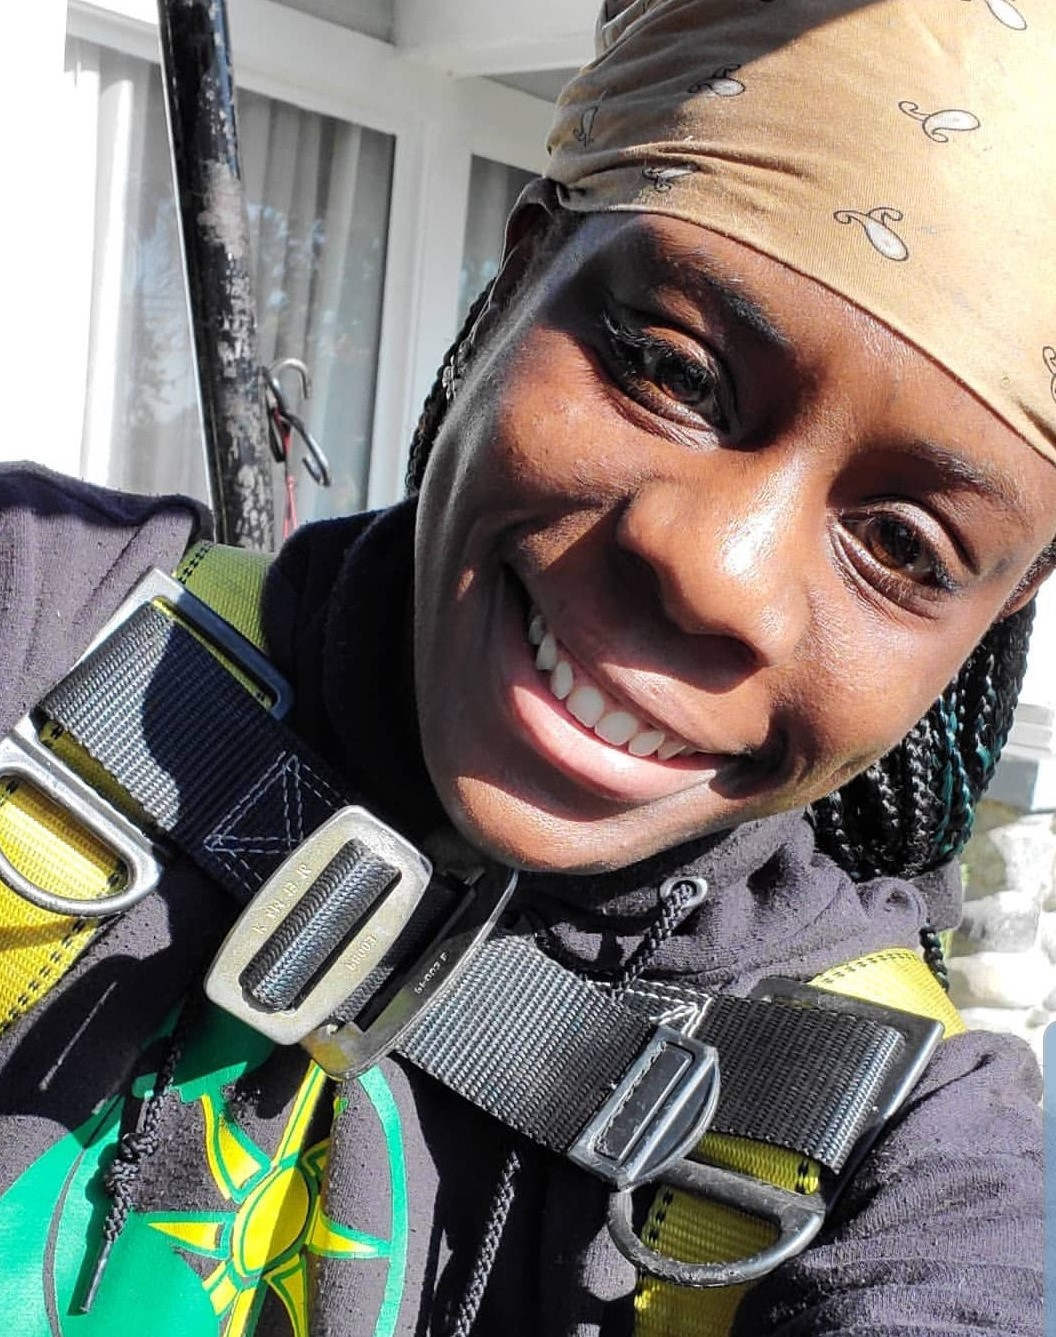 LaNetra takes a selfie in her GRID gear